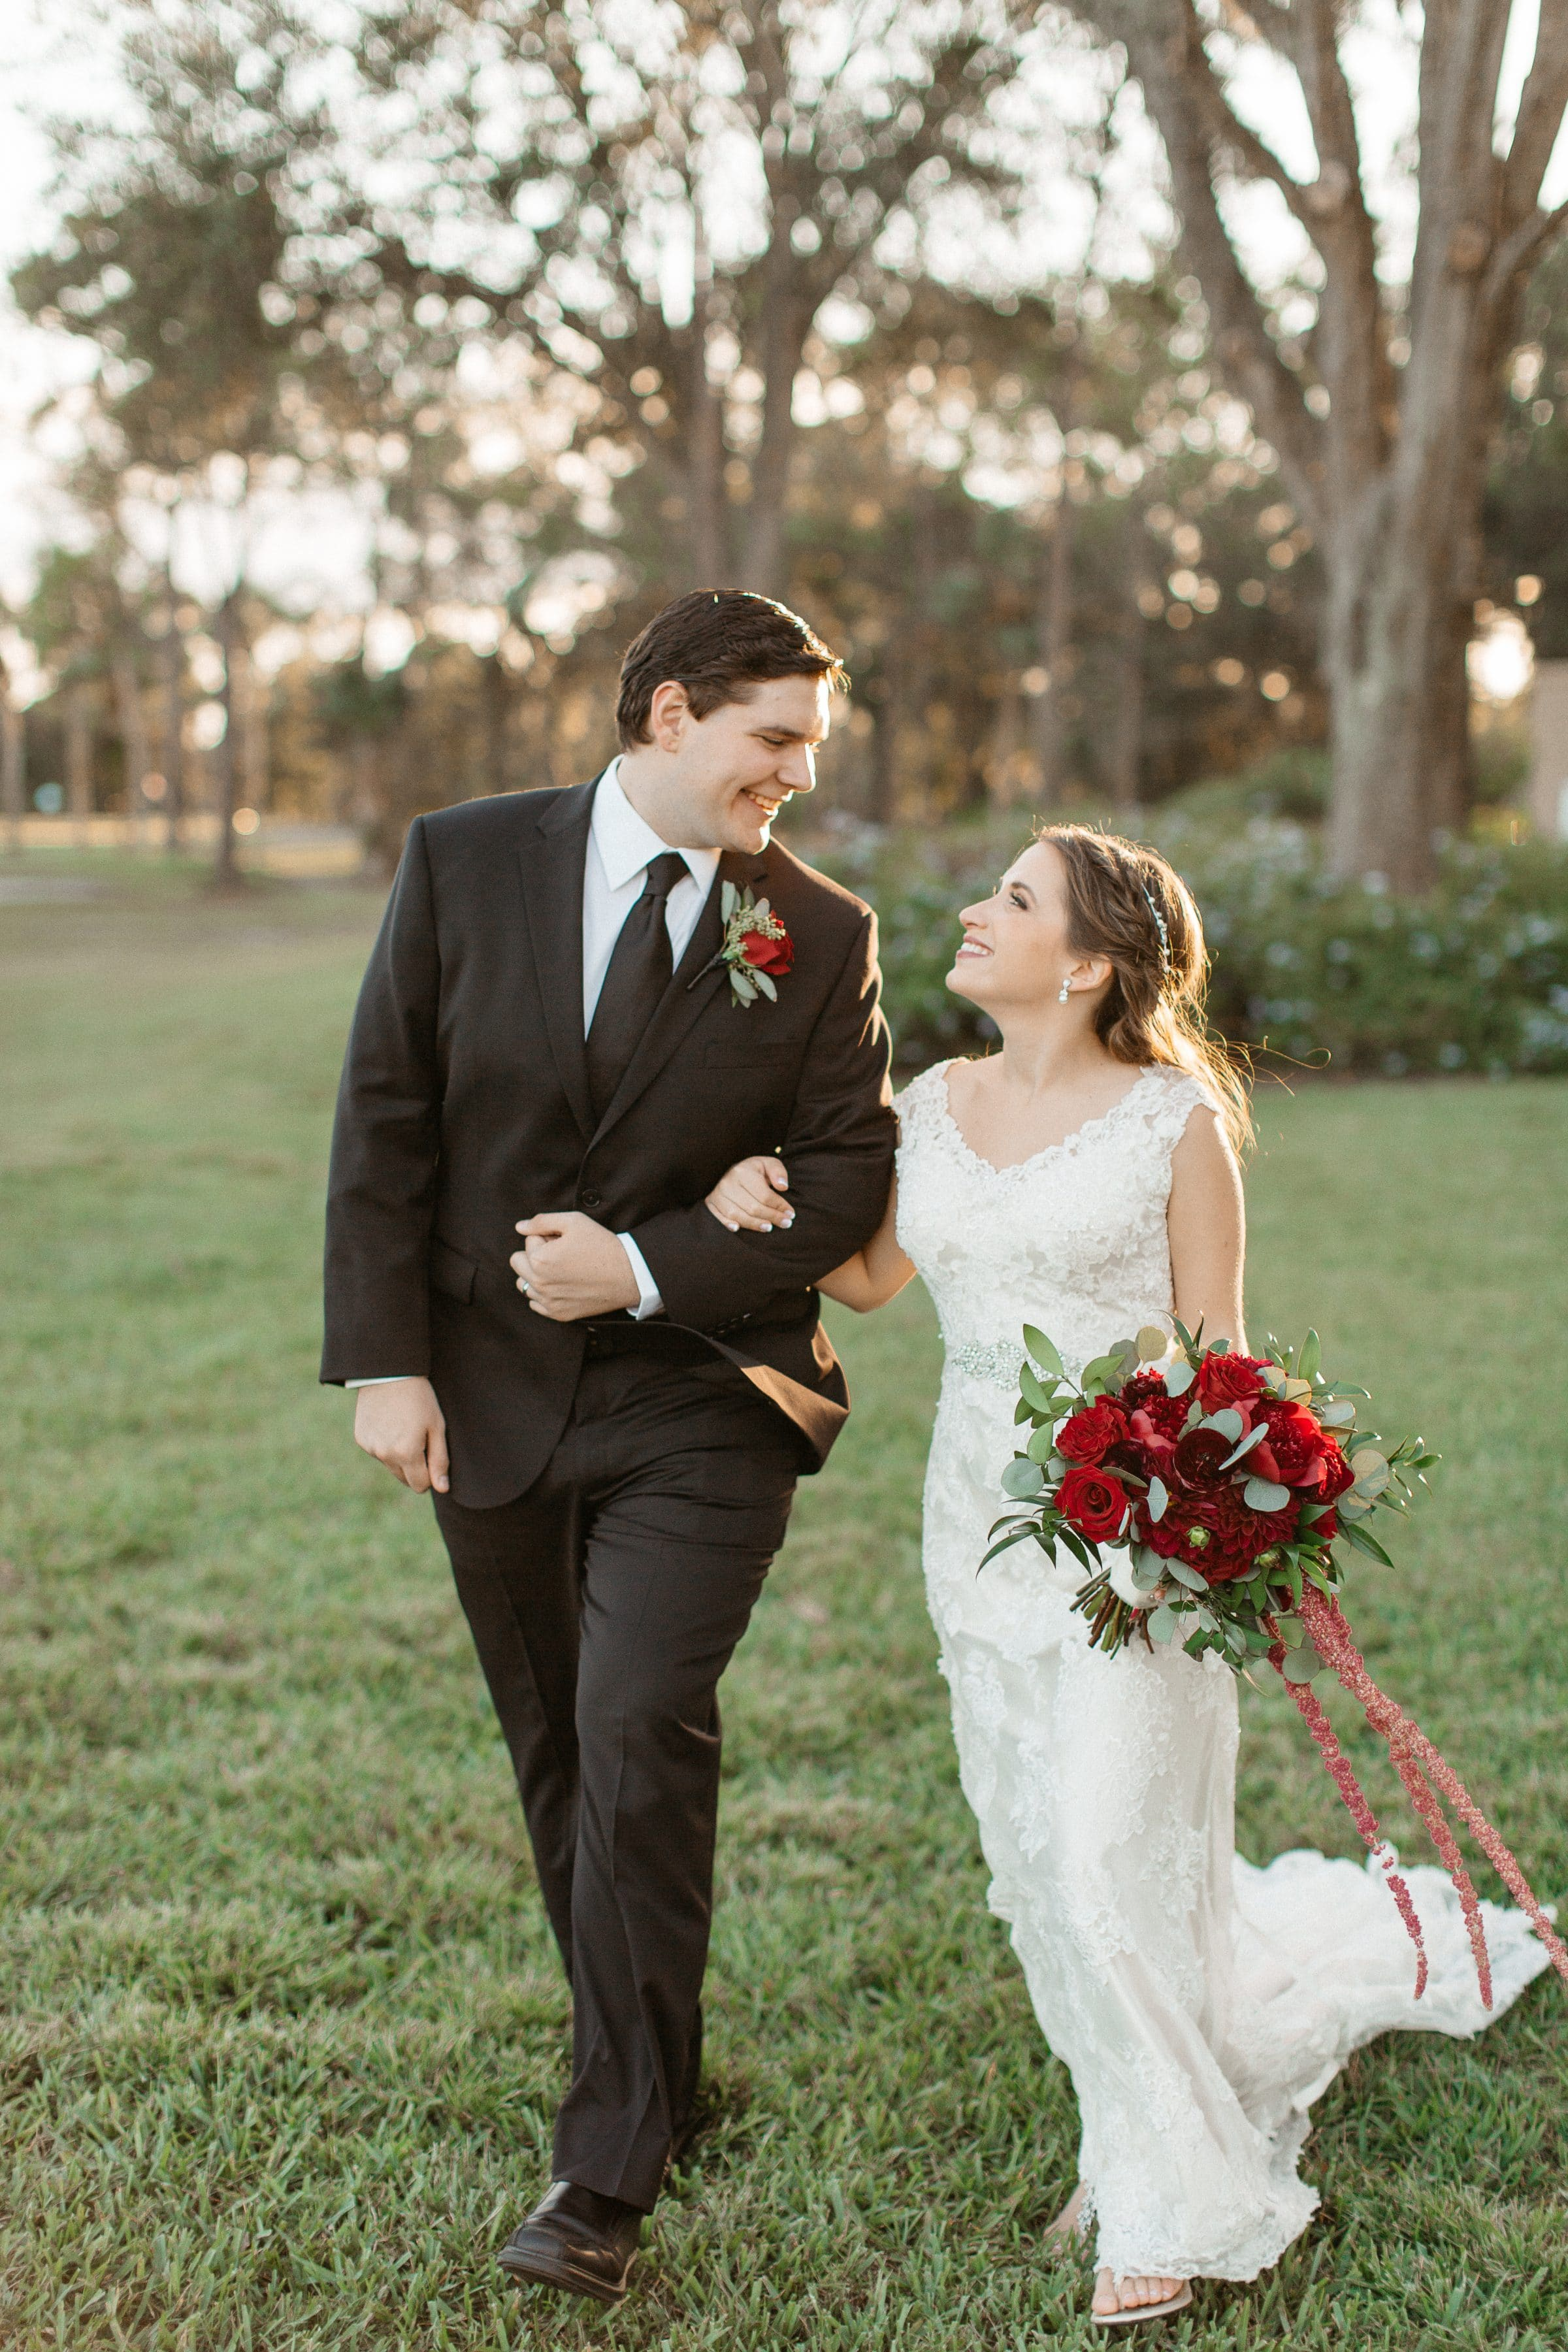 Bride and groom smiling at each other in field